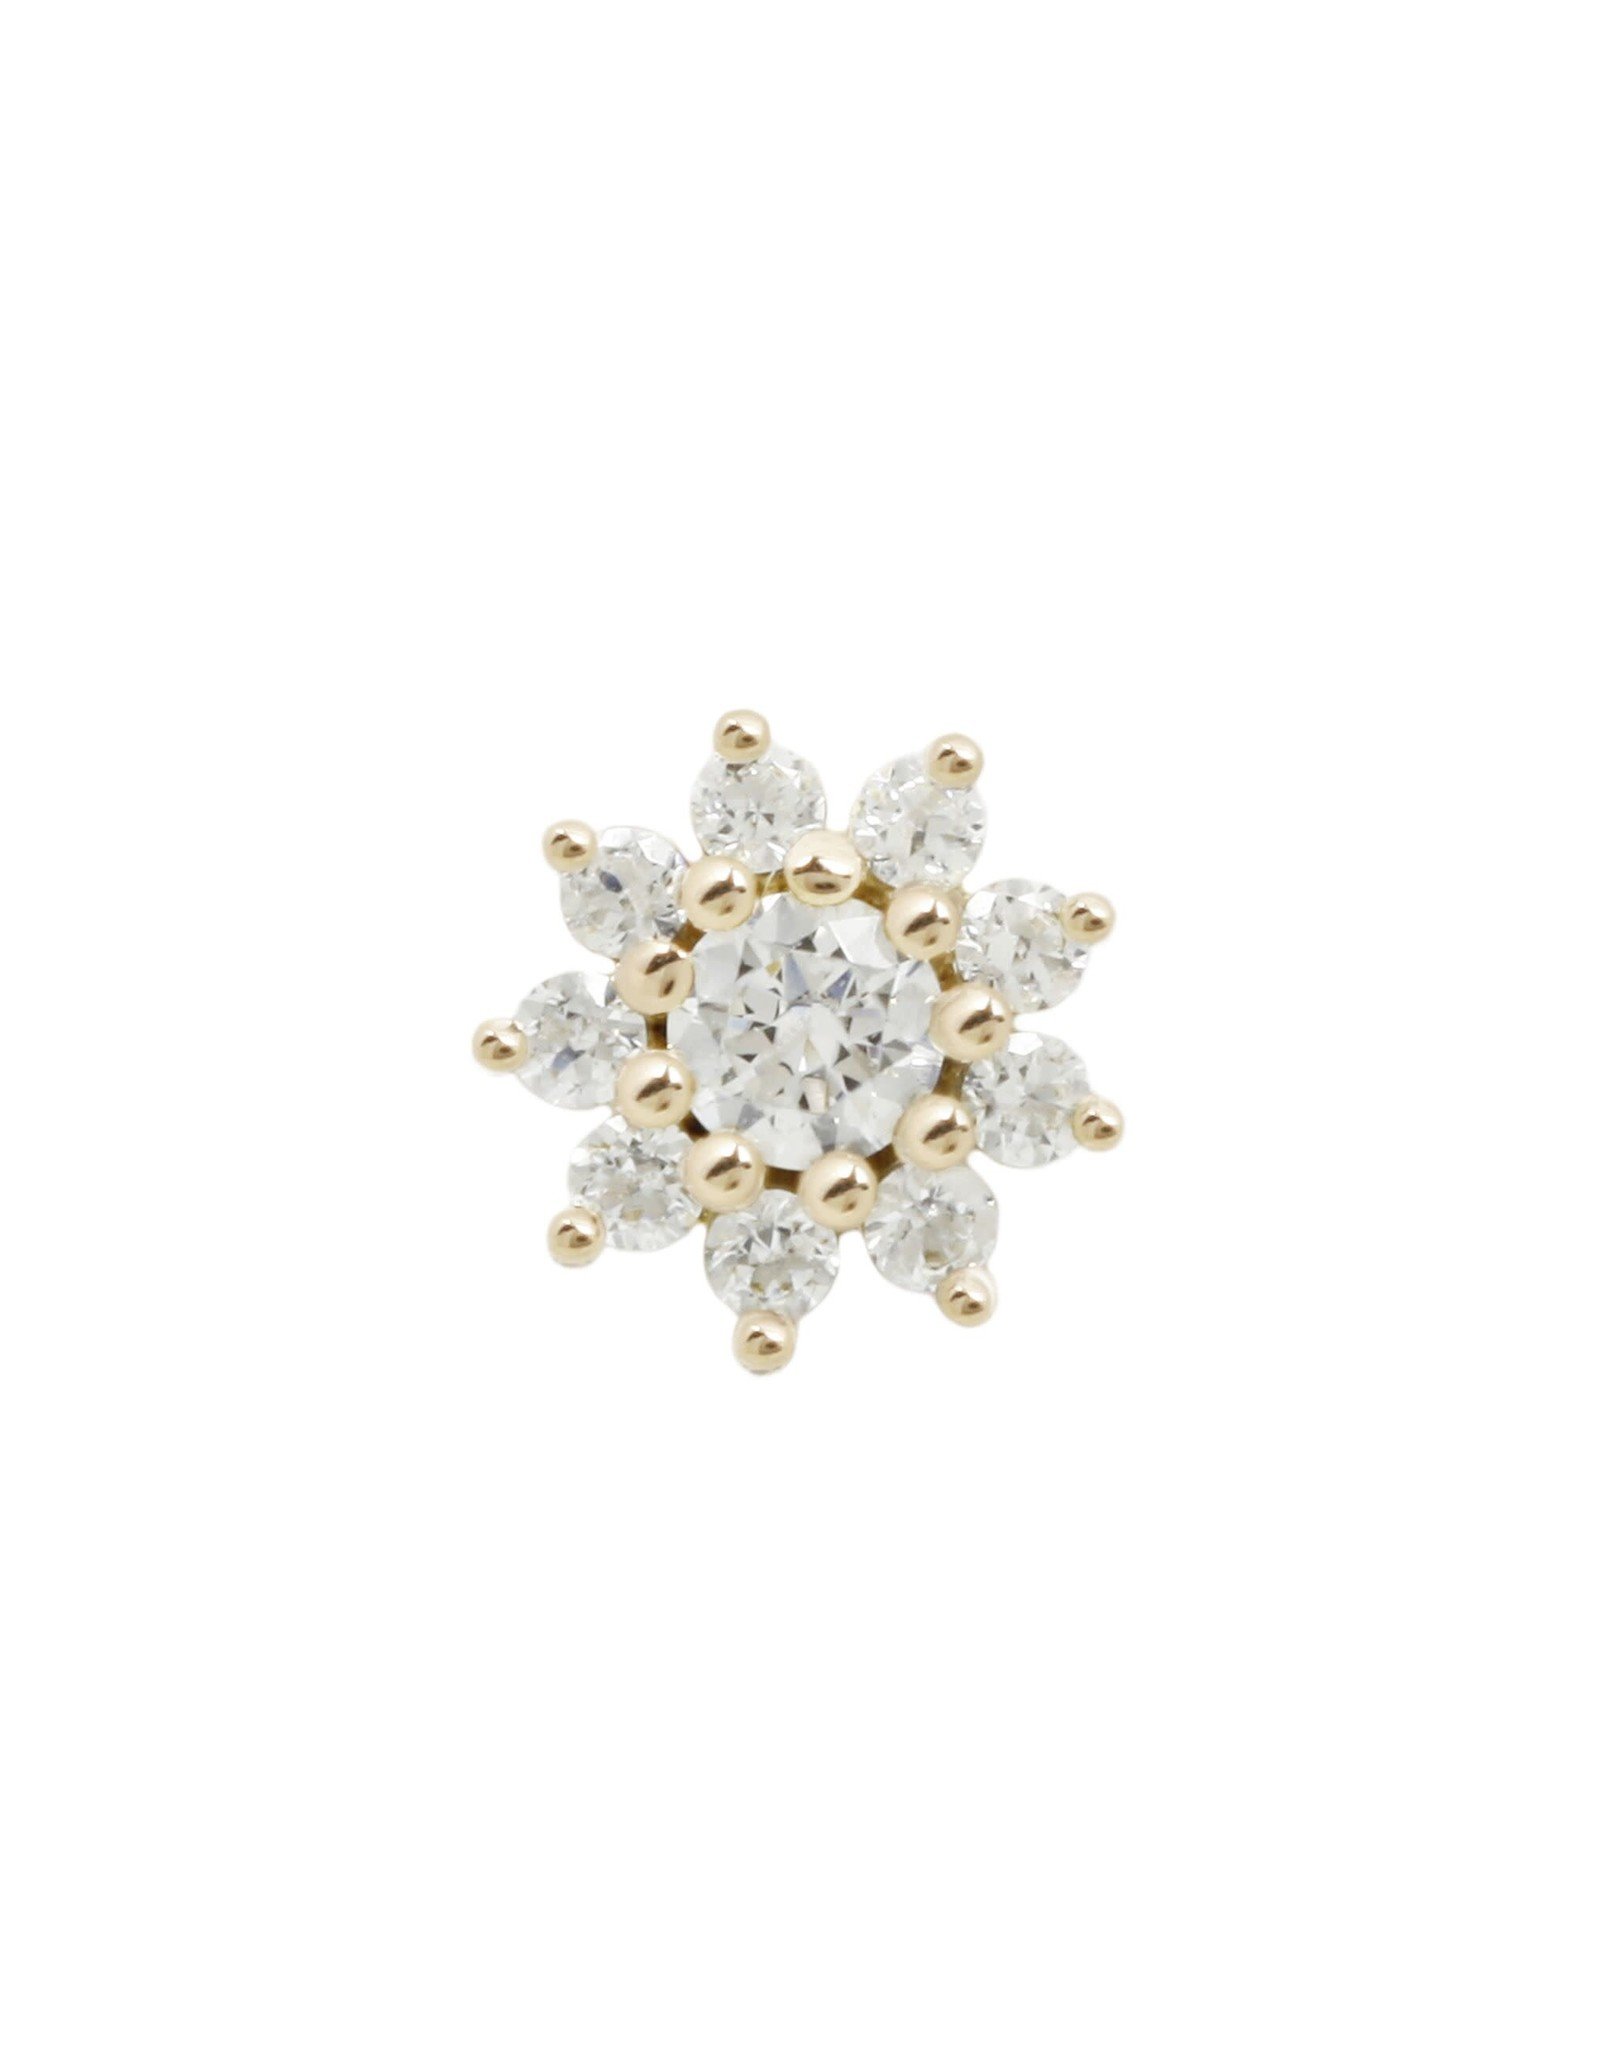 """Buddha Jewelry Organics Buddha Jewelry Organics """"Eloise"""" press fit end with CZ"""